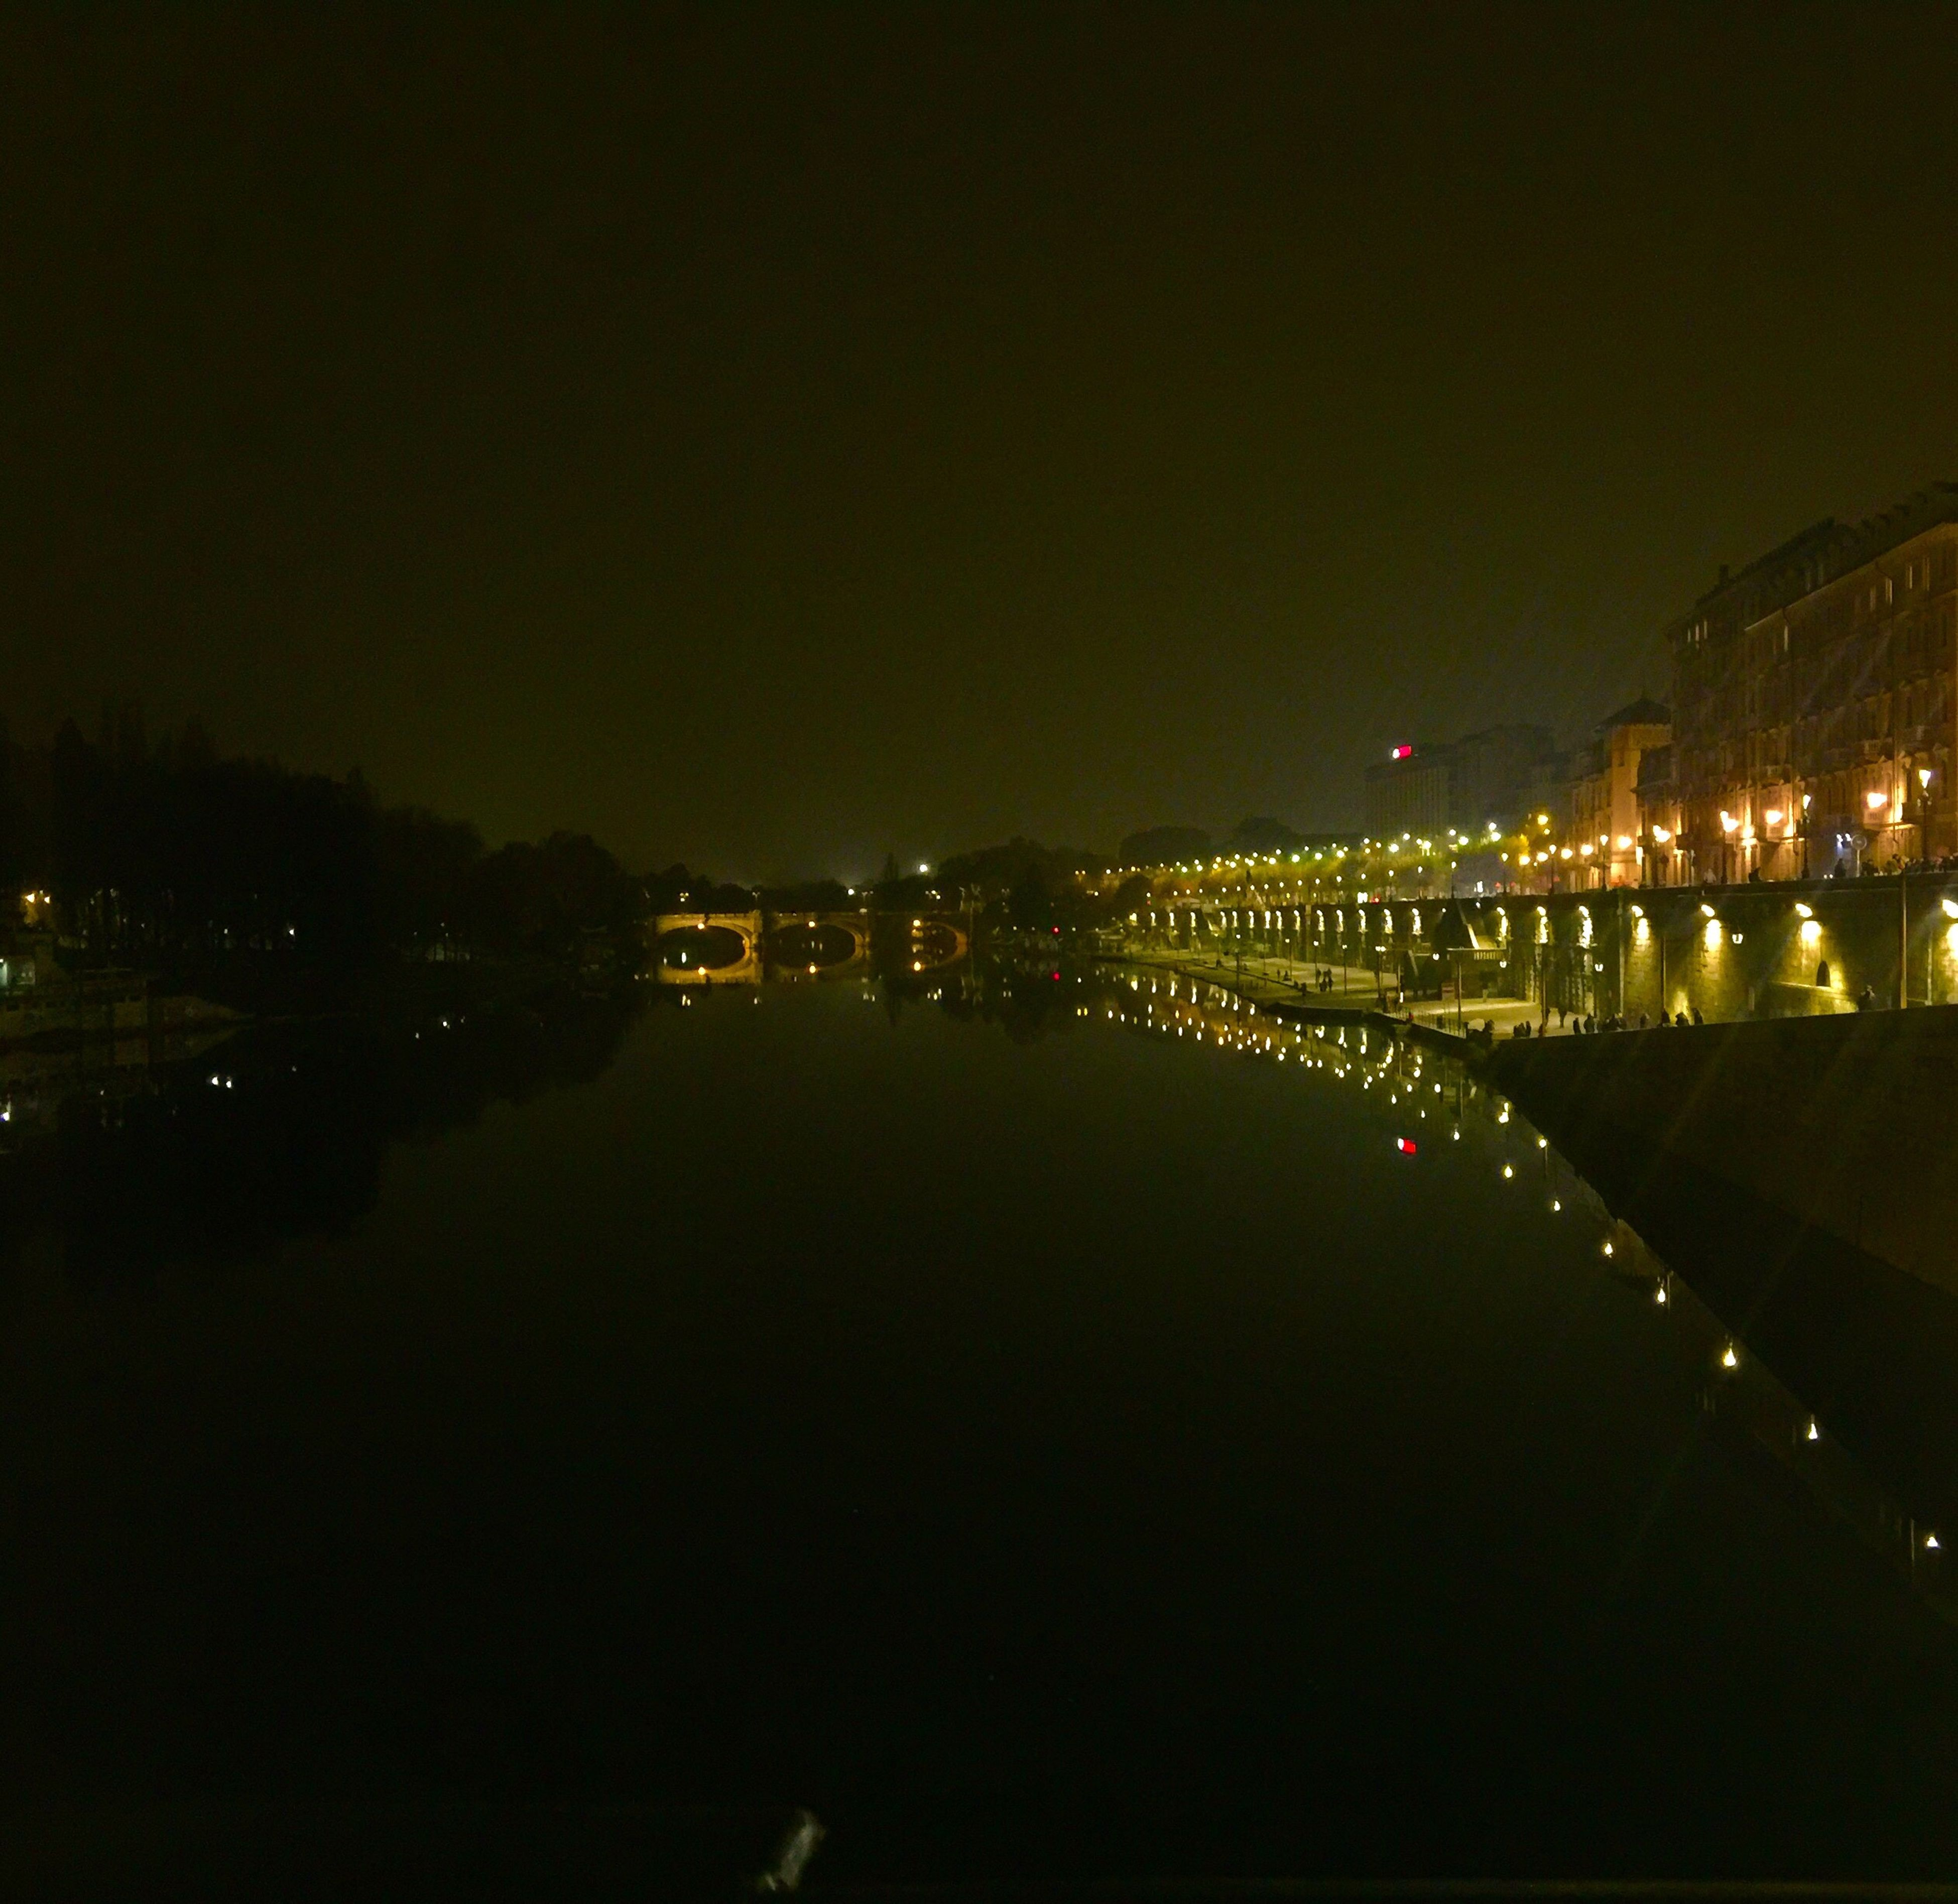 illuminated, night, reflection, architecture, built structure, city, transportation, water, river, building exterior, sky, bridge - man made structure, outdoors, no people, tree, cityscape, chain bridge